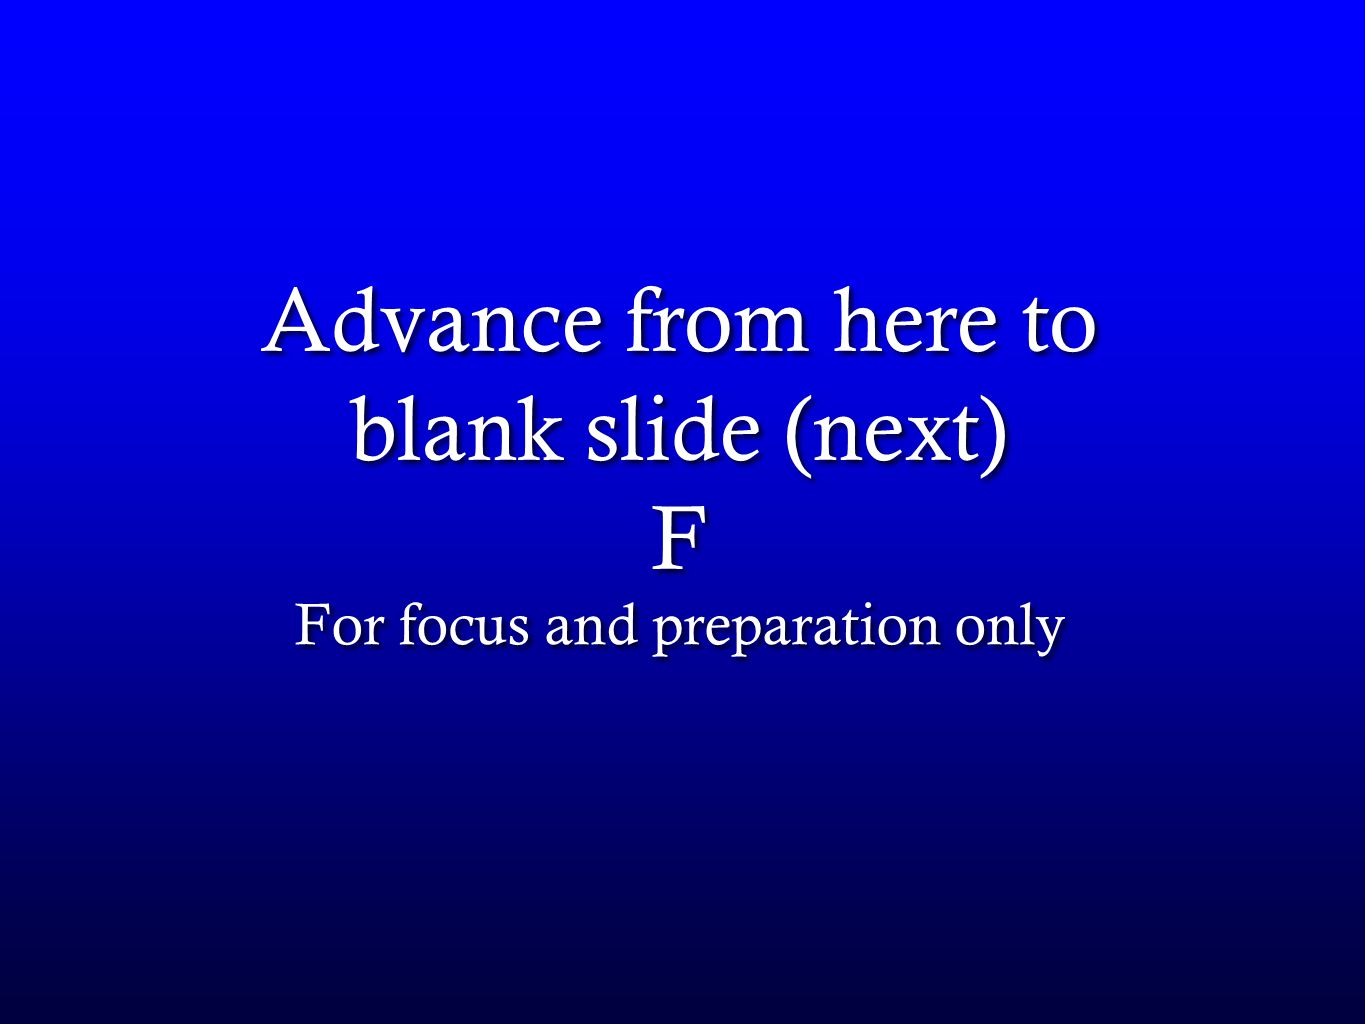 Advance from here to blank slide (next) F For focus and preparation only